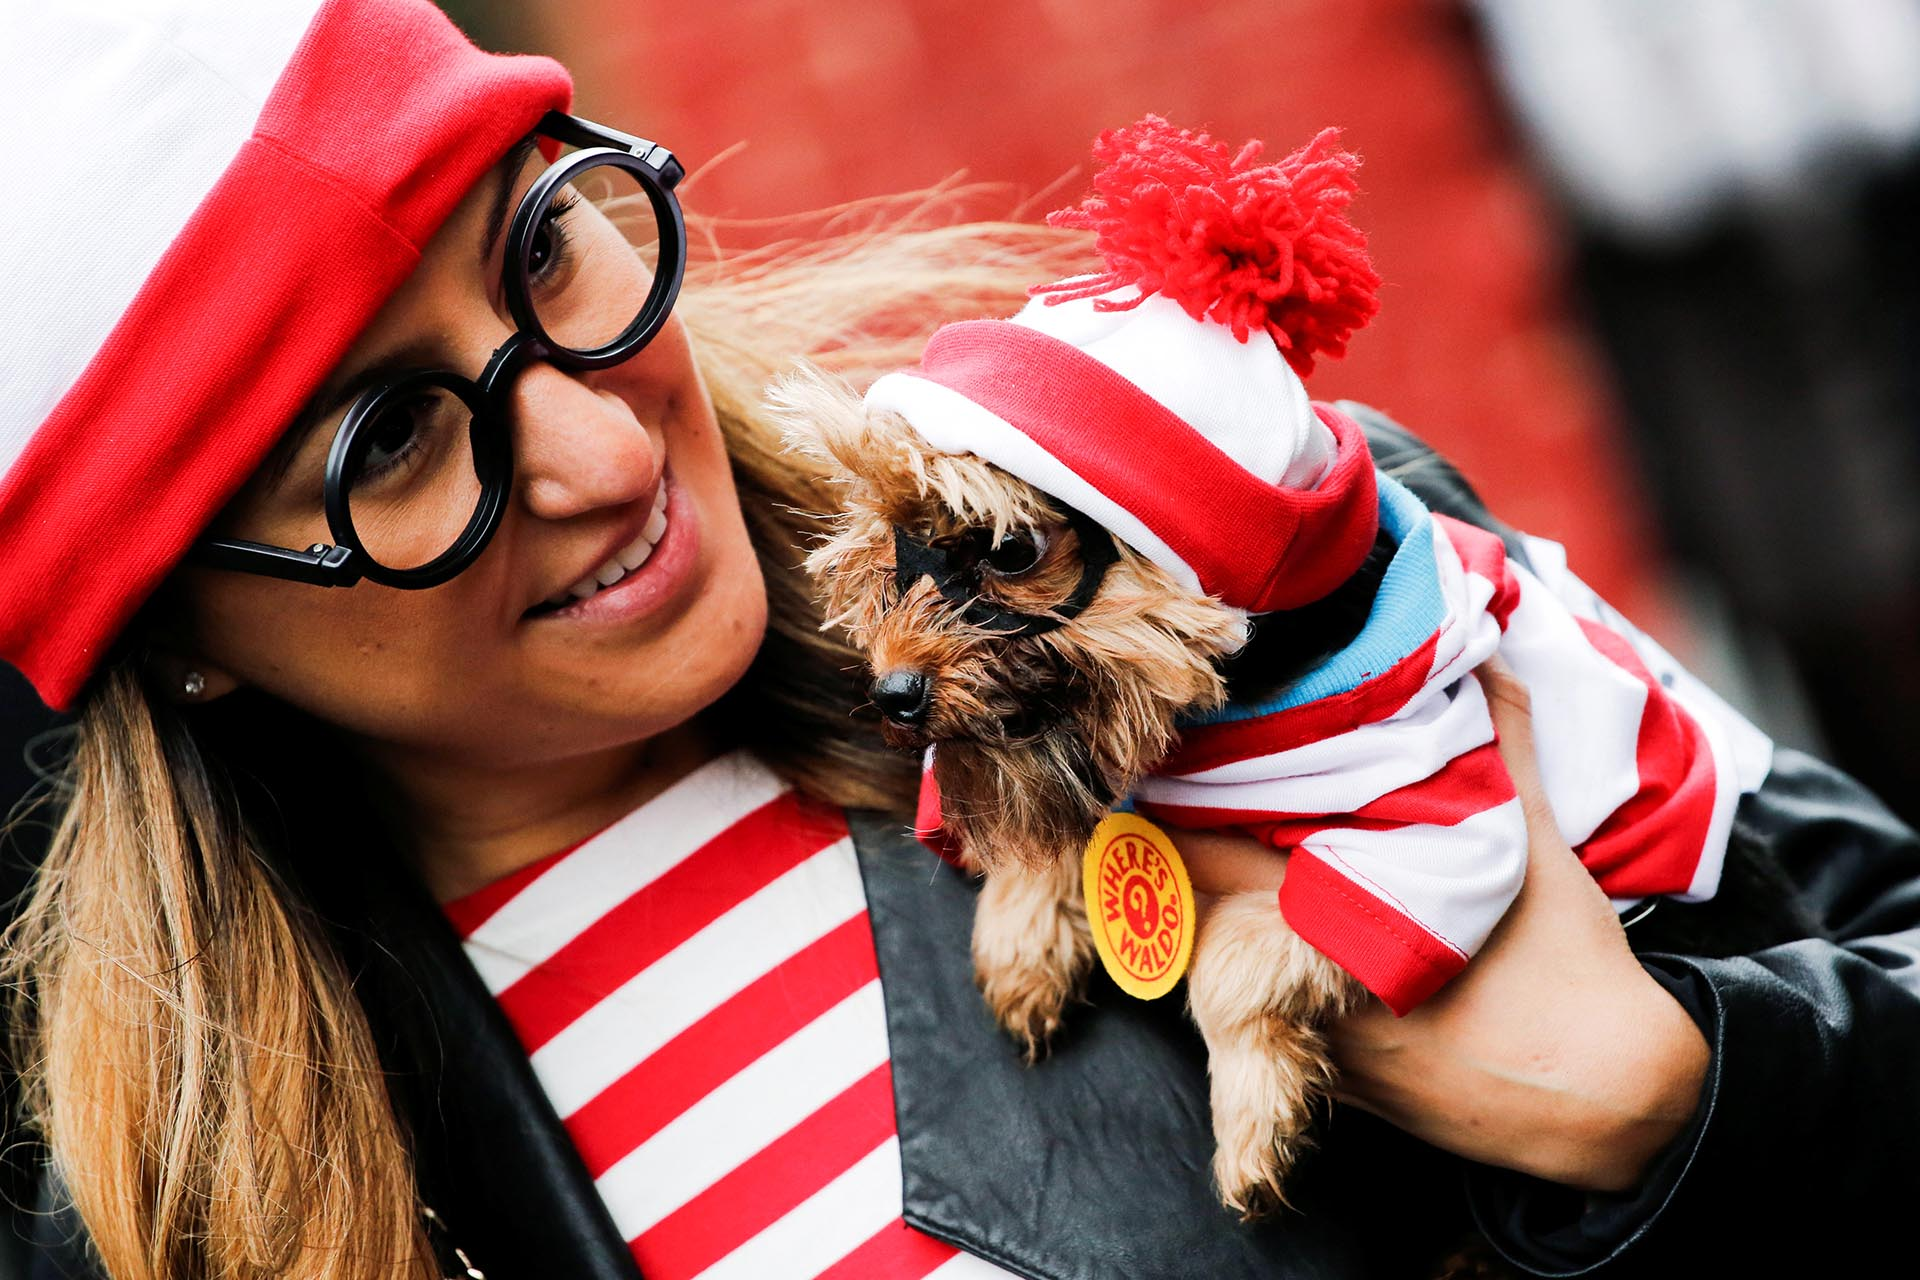 A reveller takes part in the annual halloween dog parade at Manhattan's Tompkins Square Park in New York